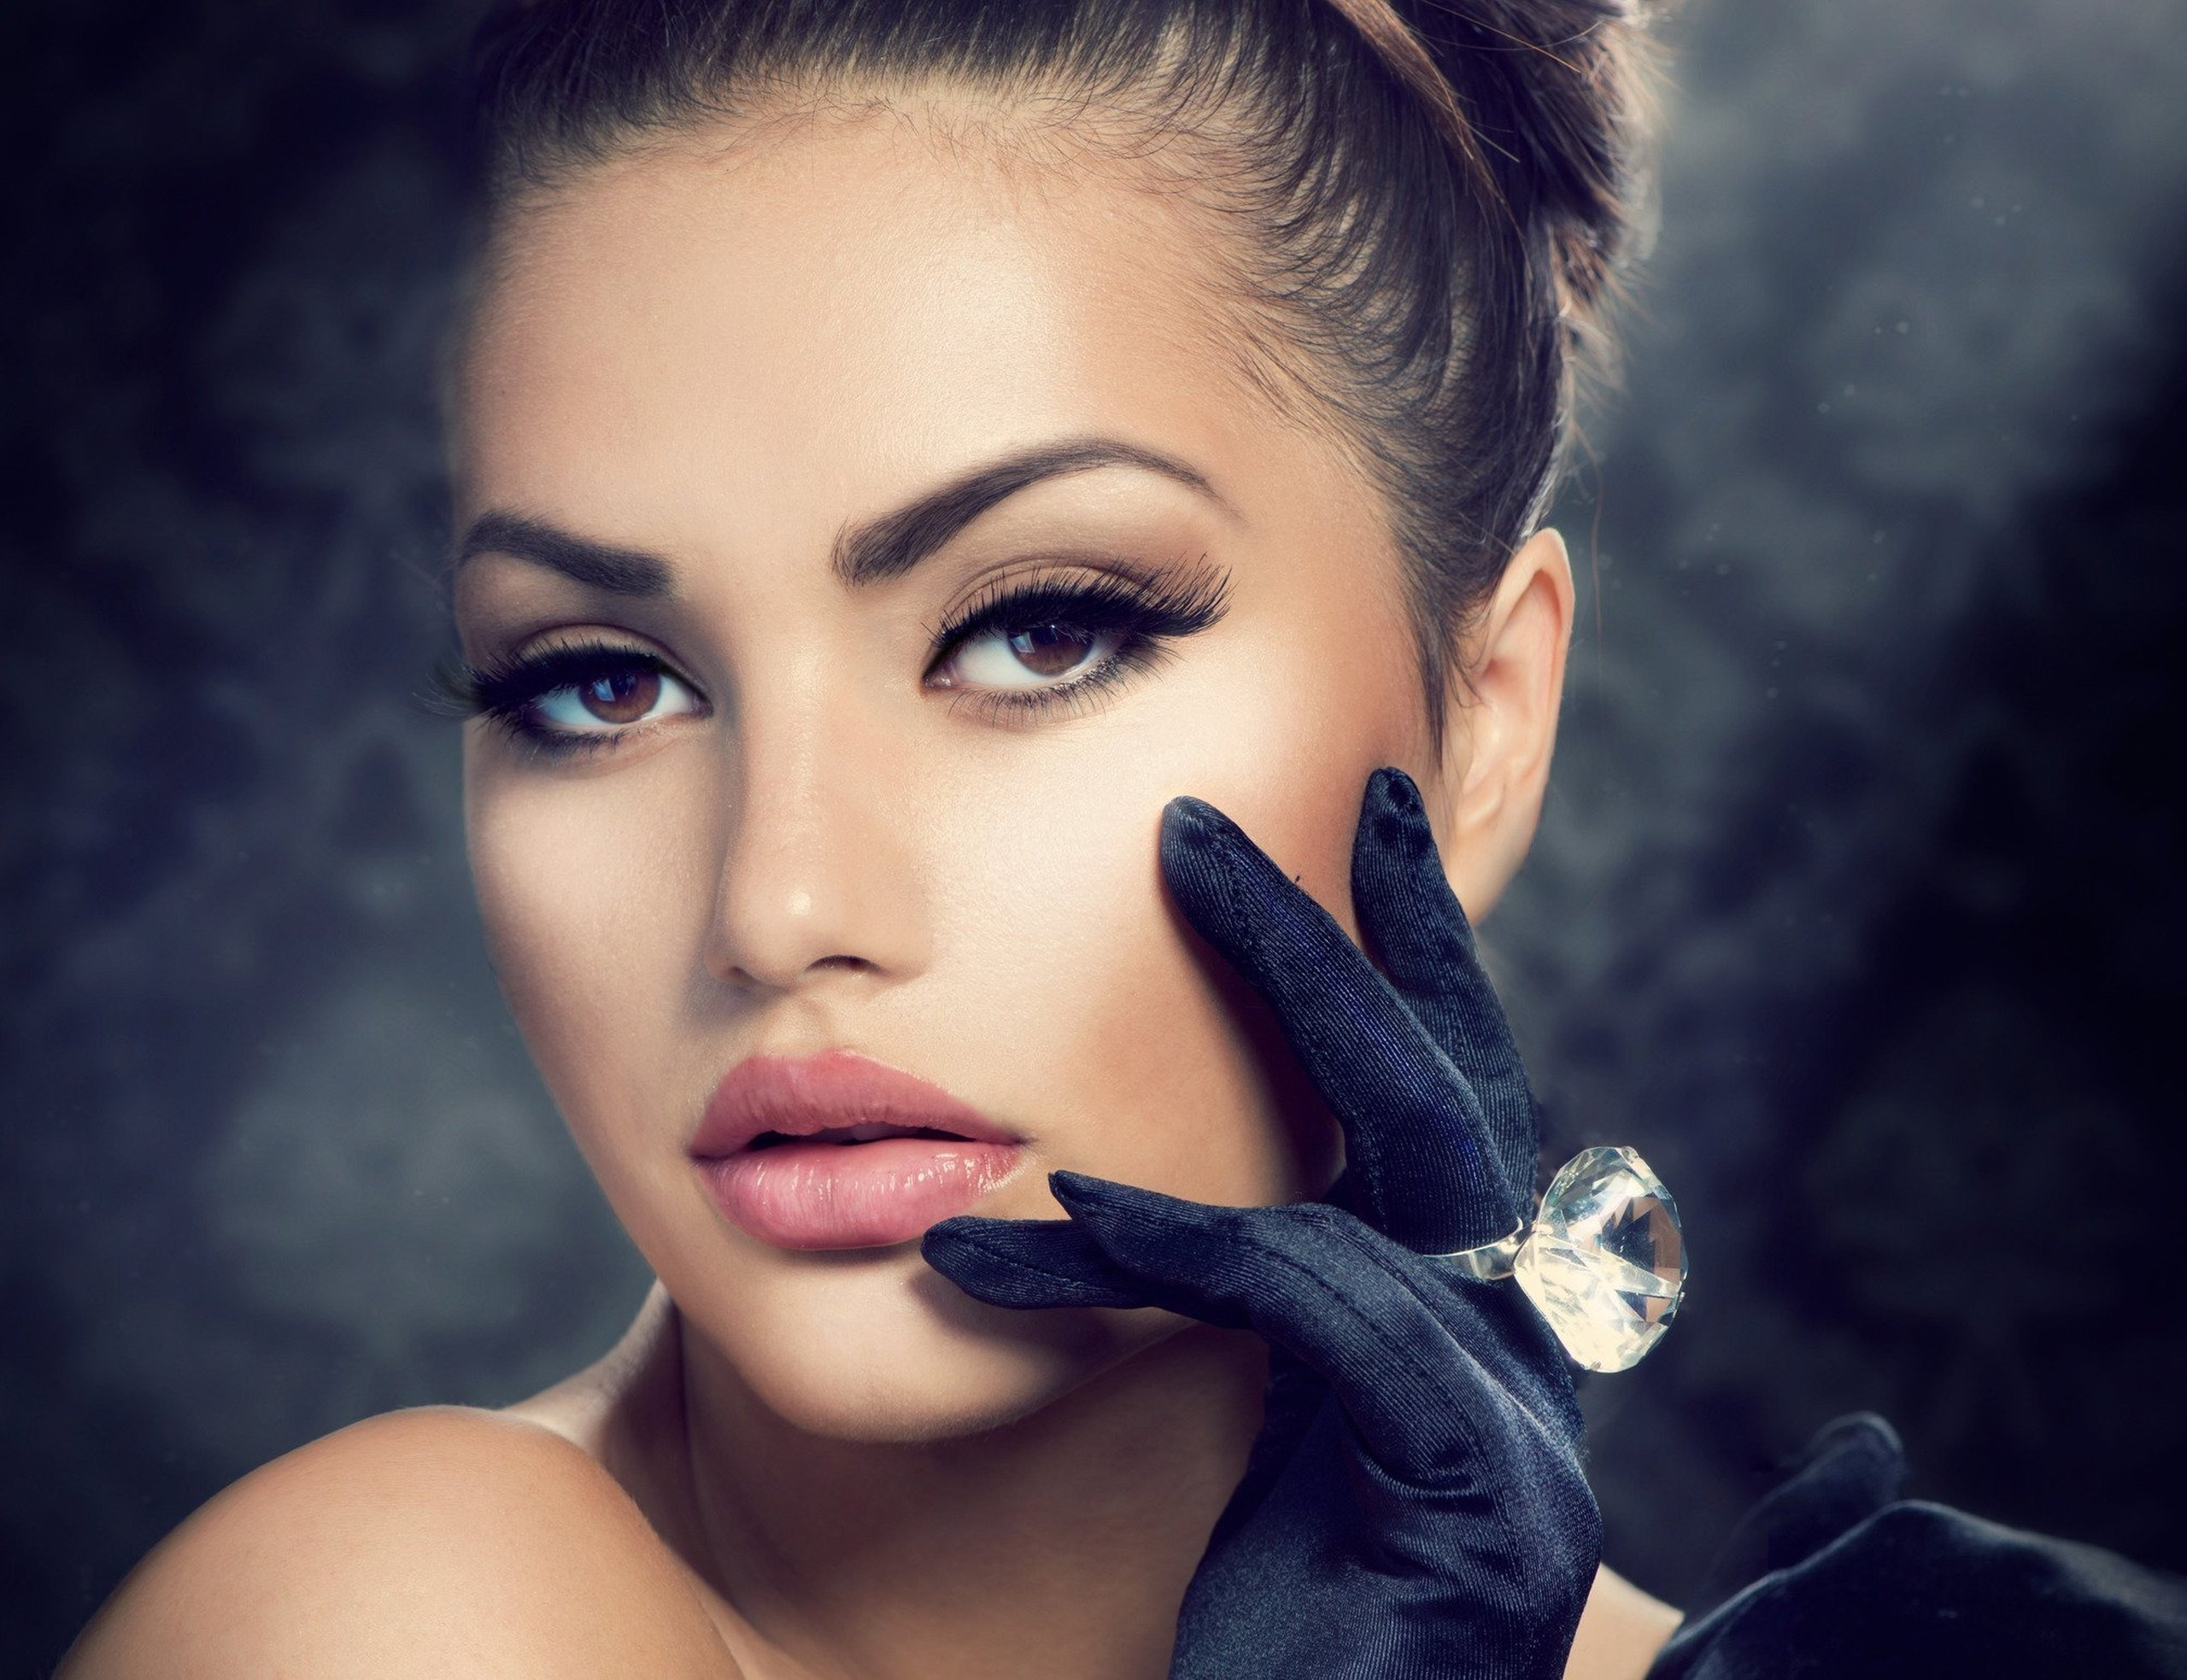 Model Photo Hand Girl Gloves Ring Makeup Eyelashes Hair